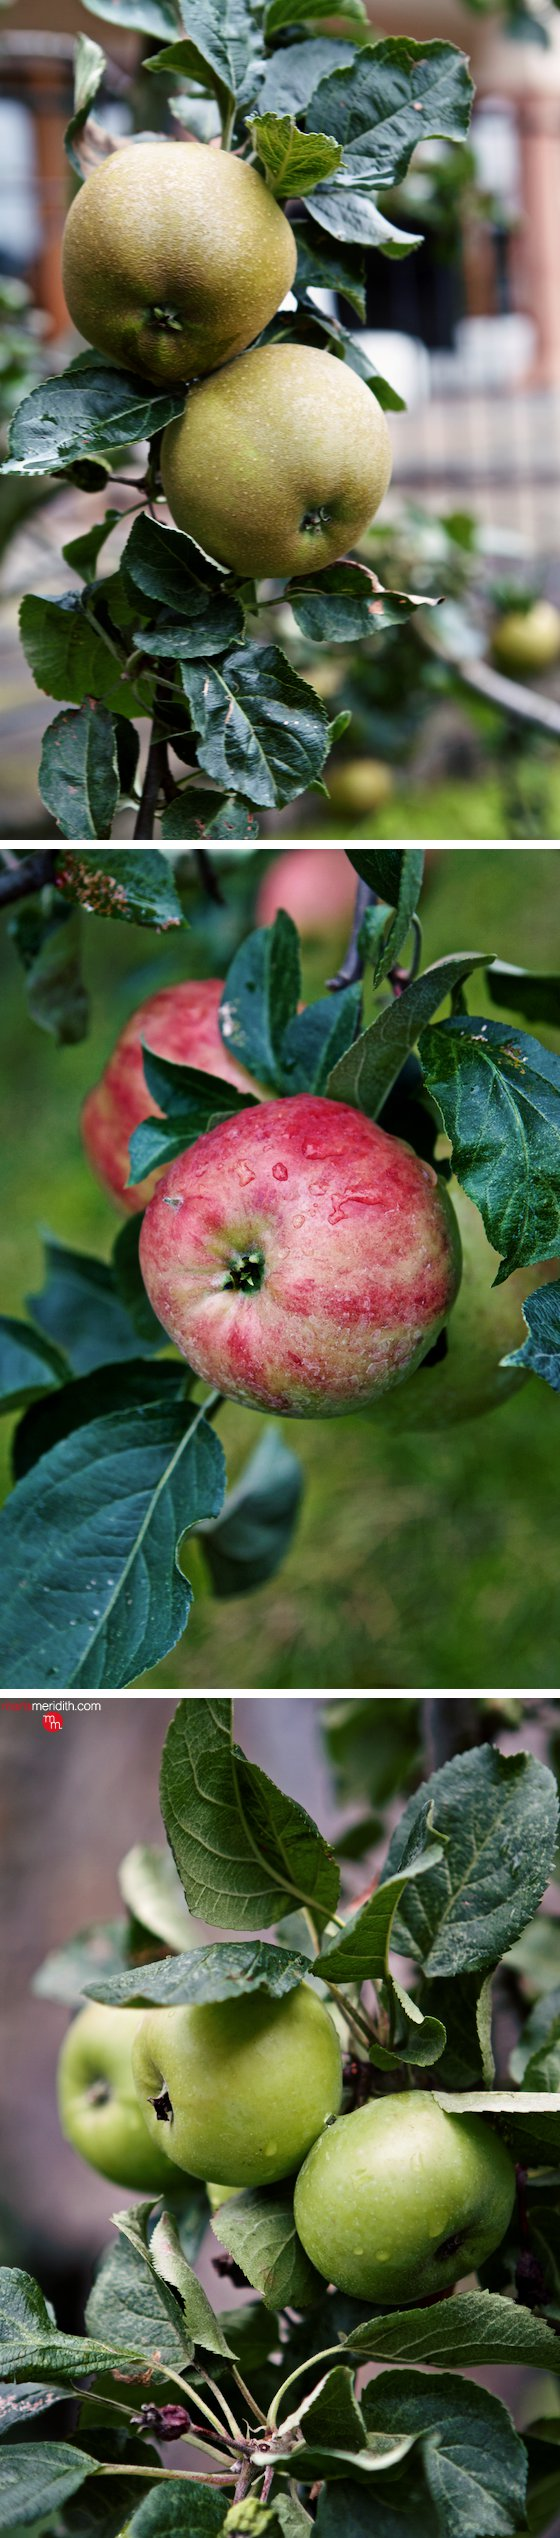 Apple love in the South Tyrol! Vols, Italy. MarlaMeridith.com ( @marlameridith )